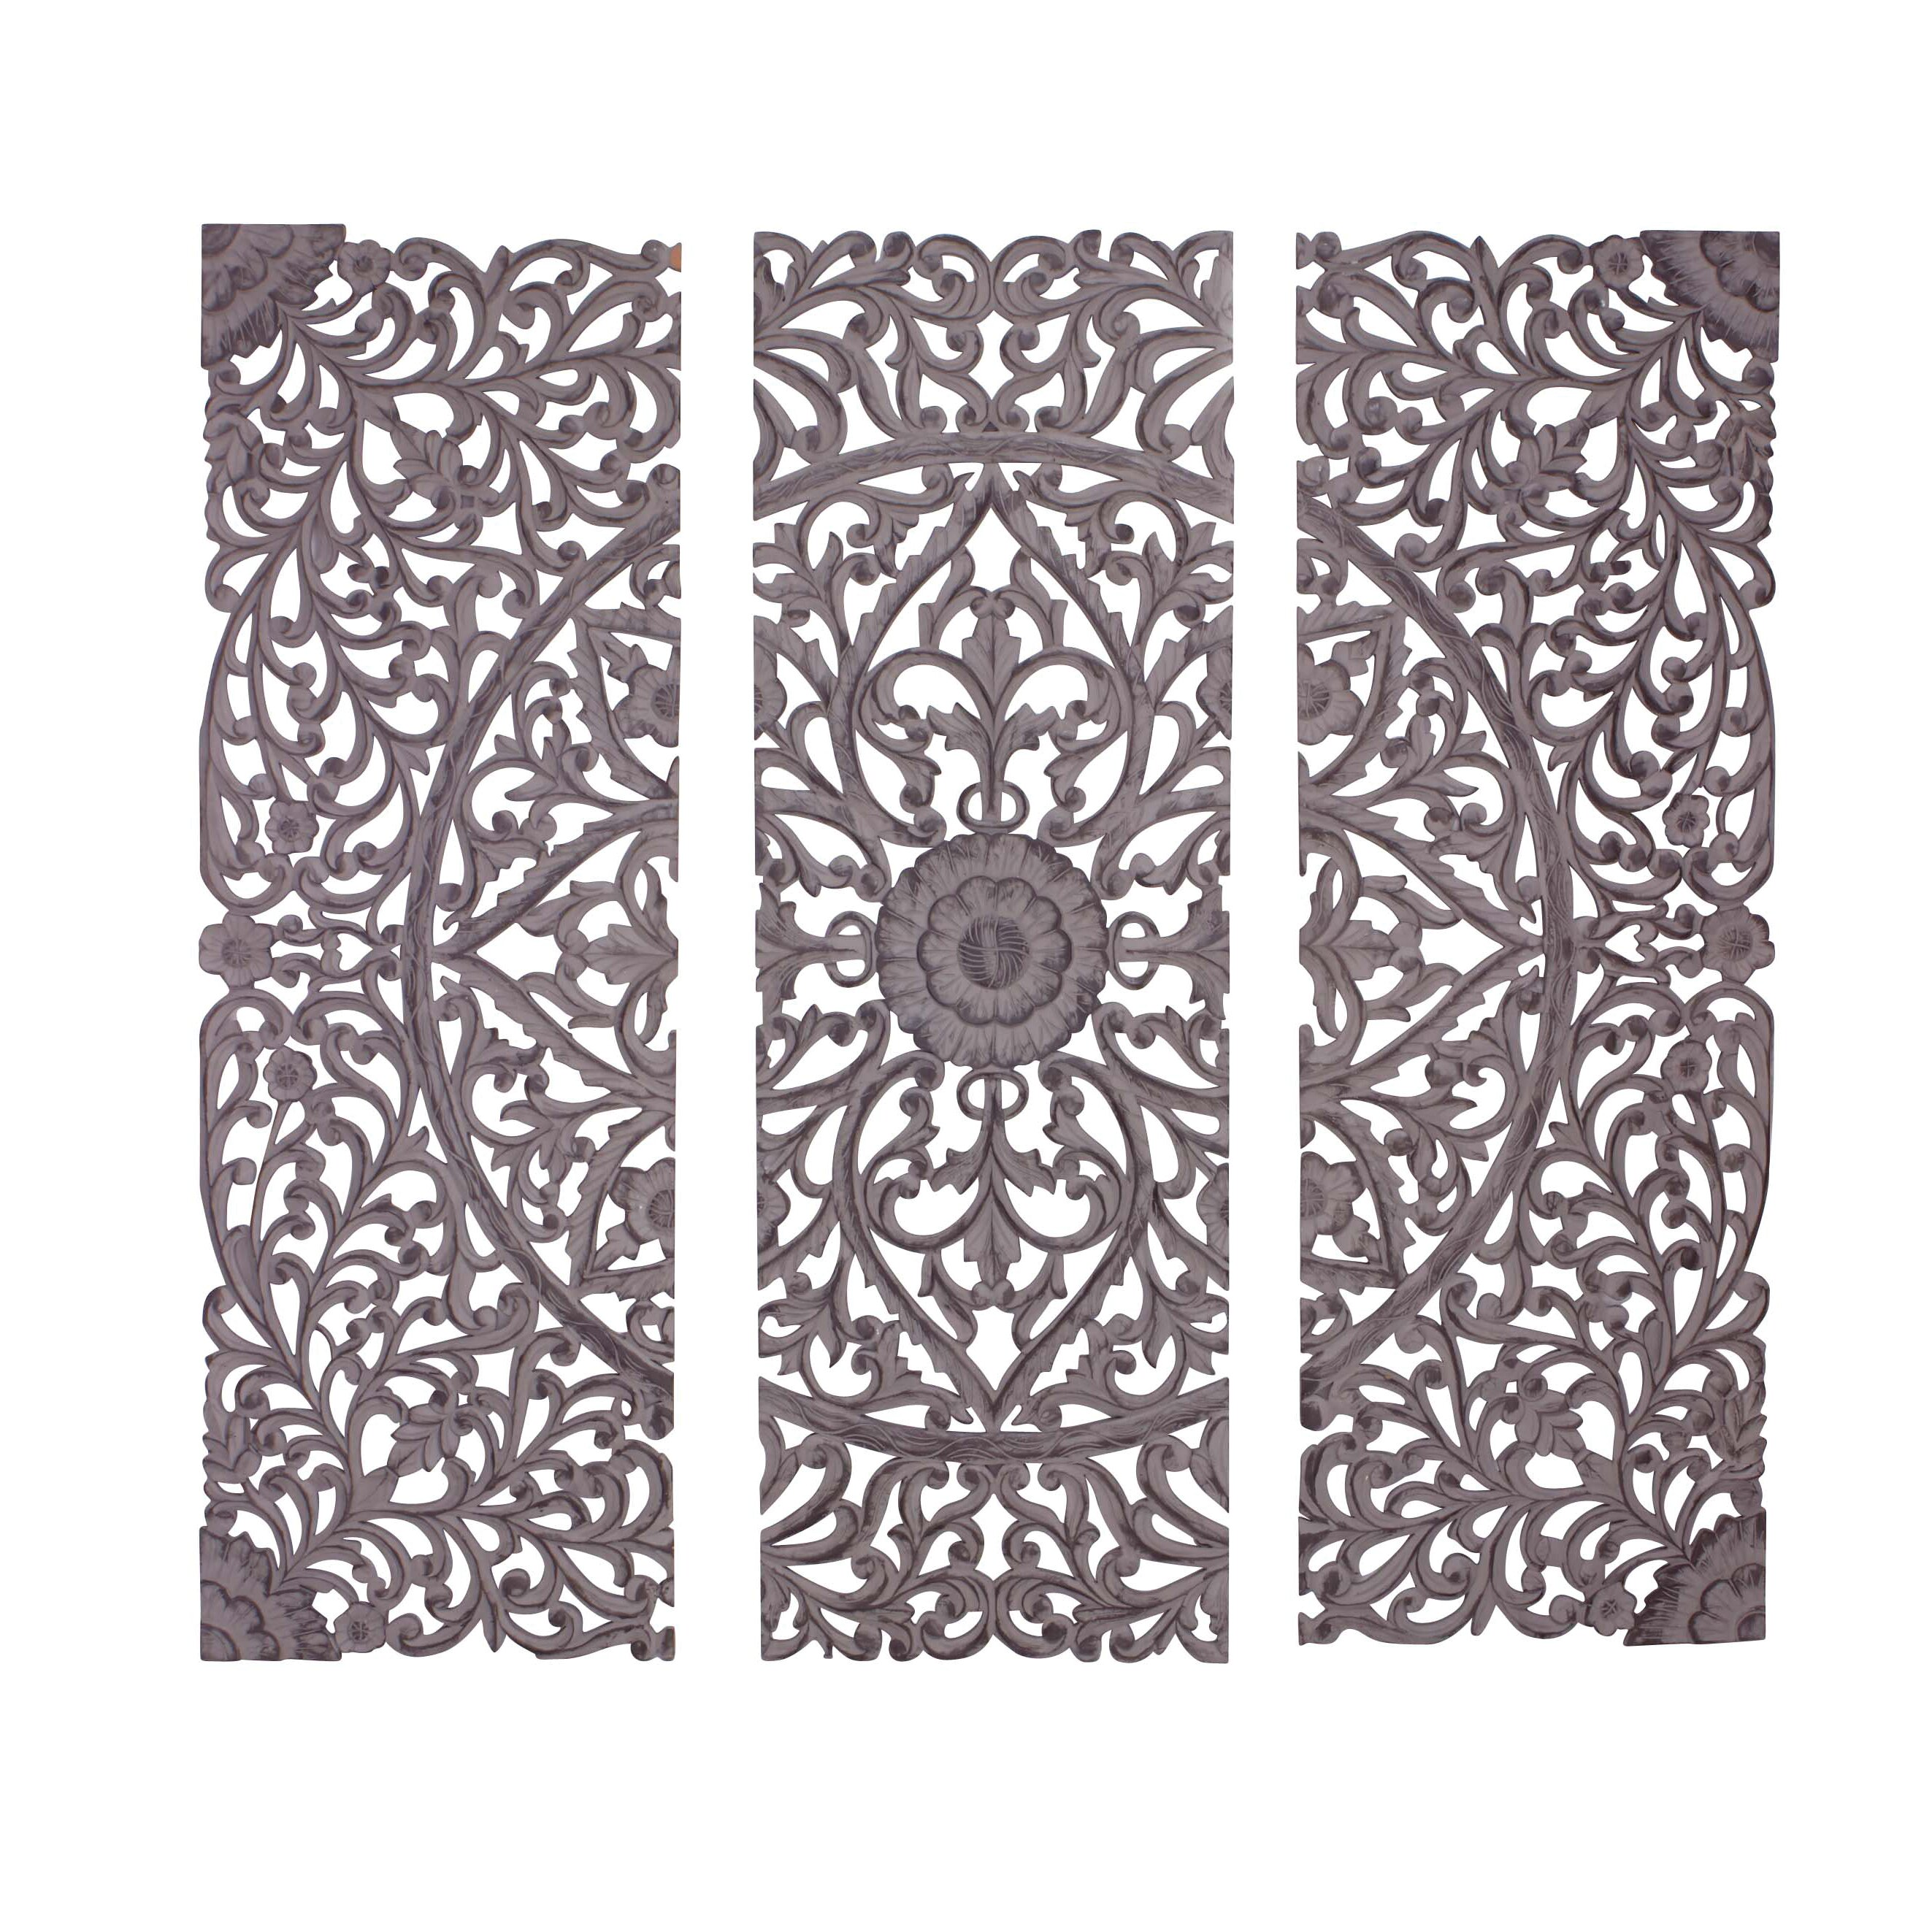 Woodland Imports 3 Piece The Must Have Wood Carved Panel